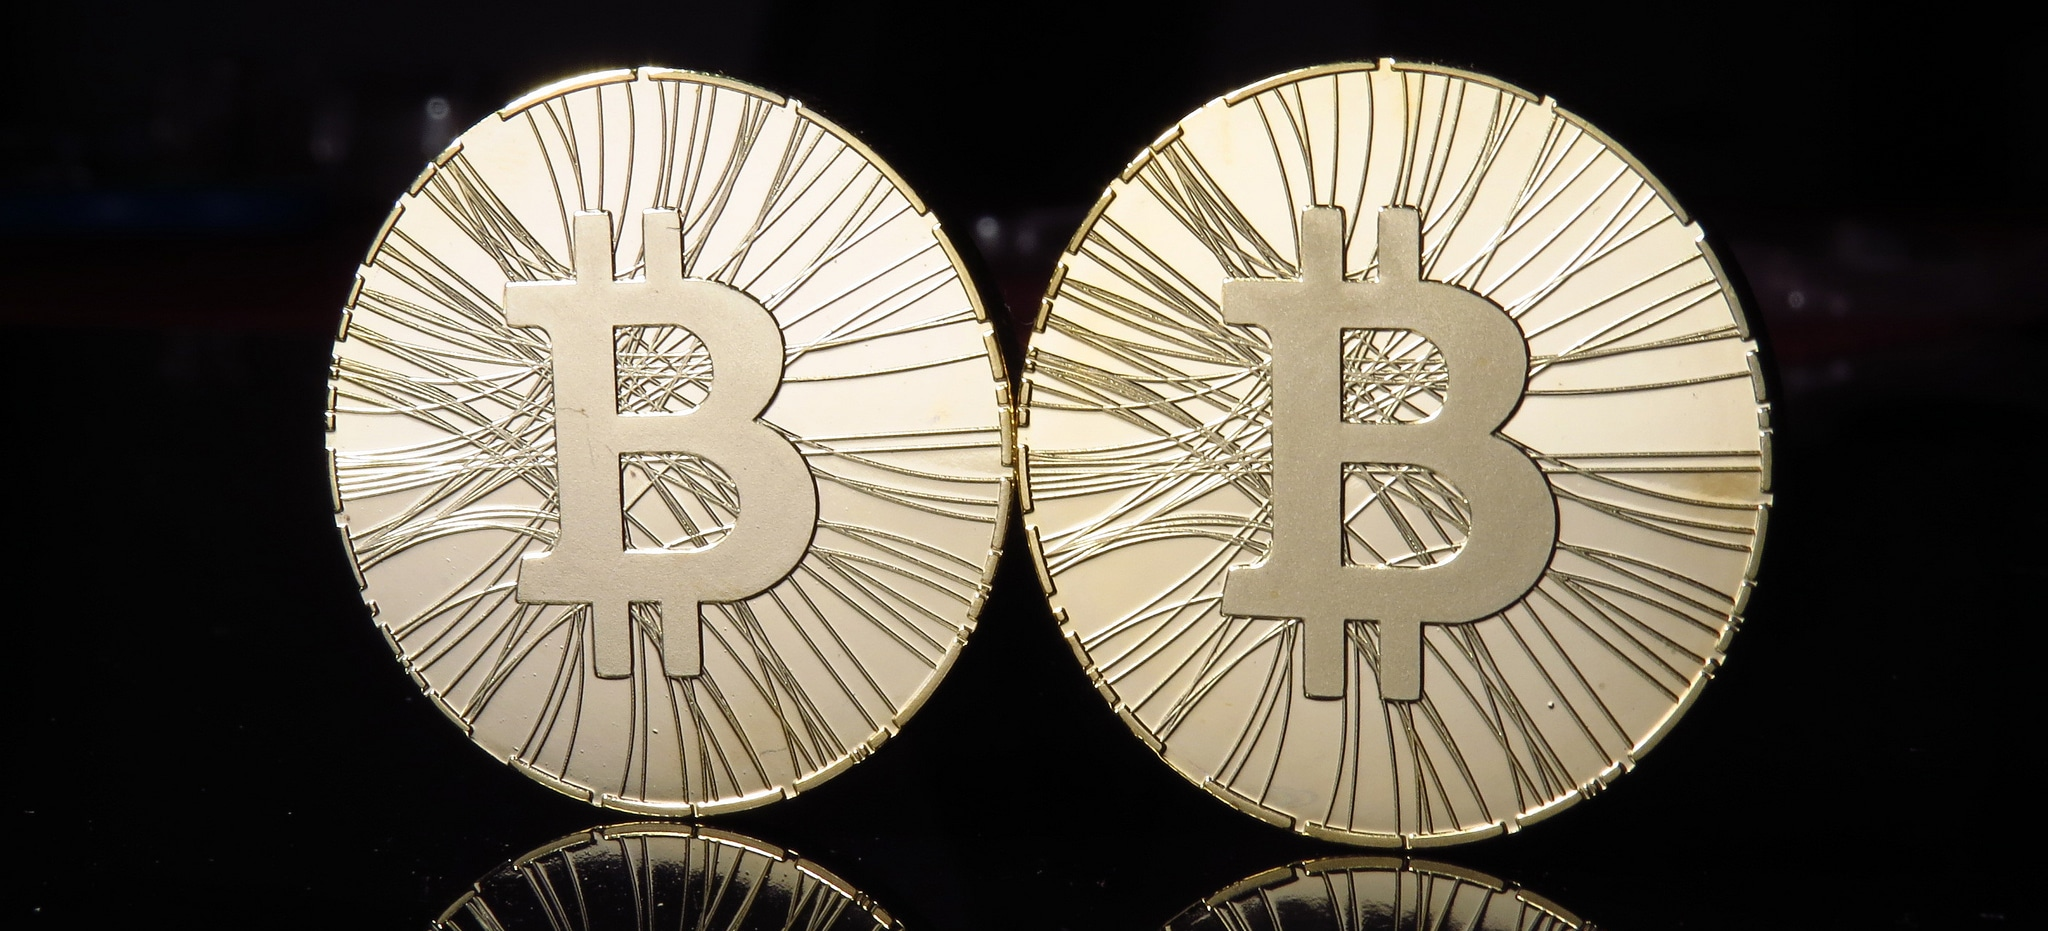 Bitcoin Looking to Mature with Bitcoin XT